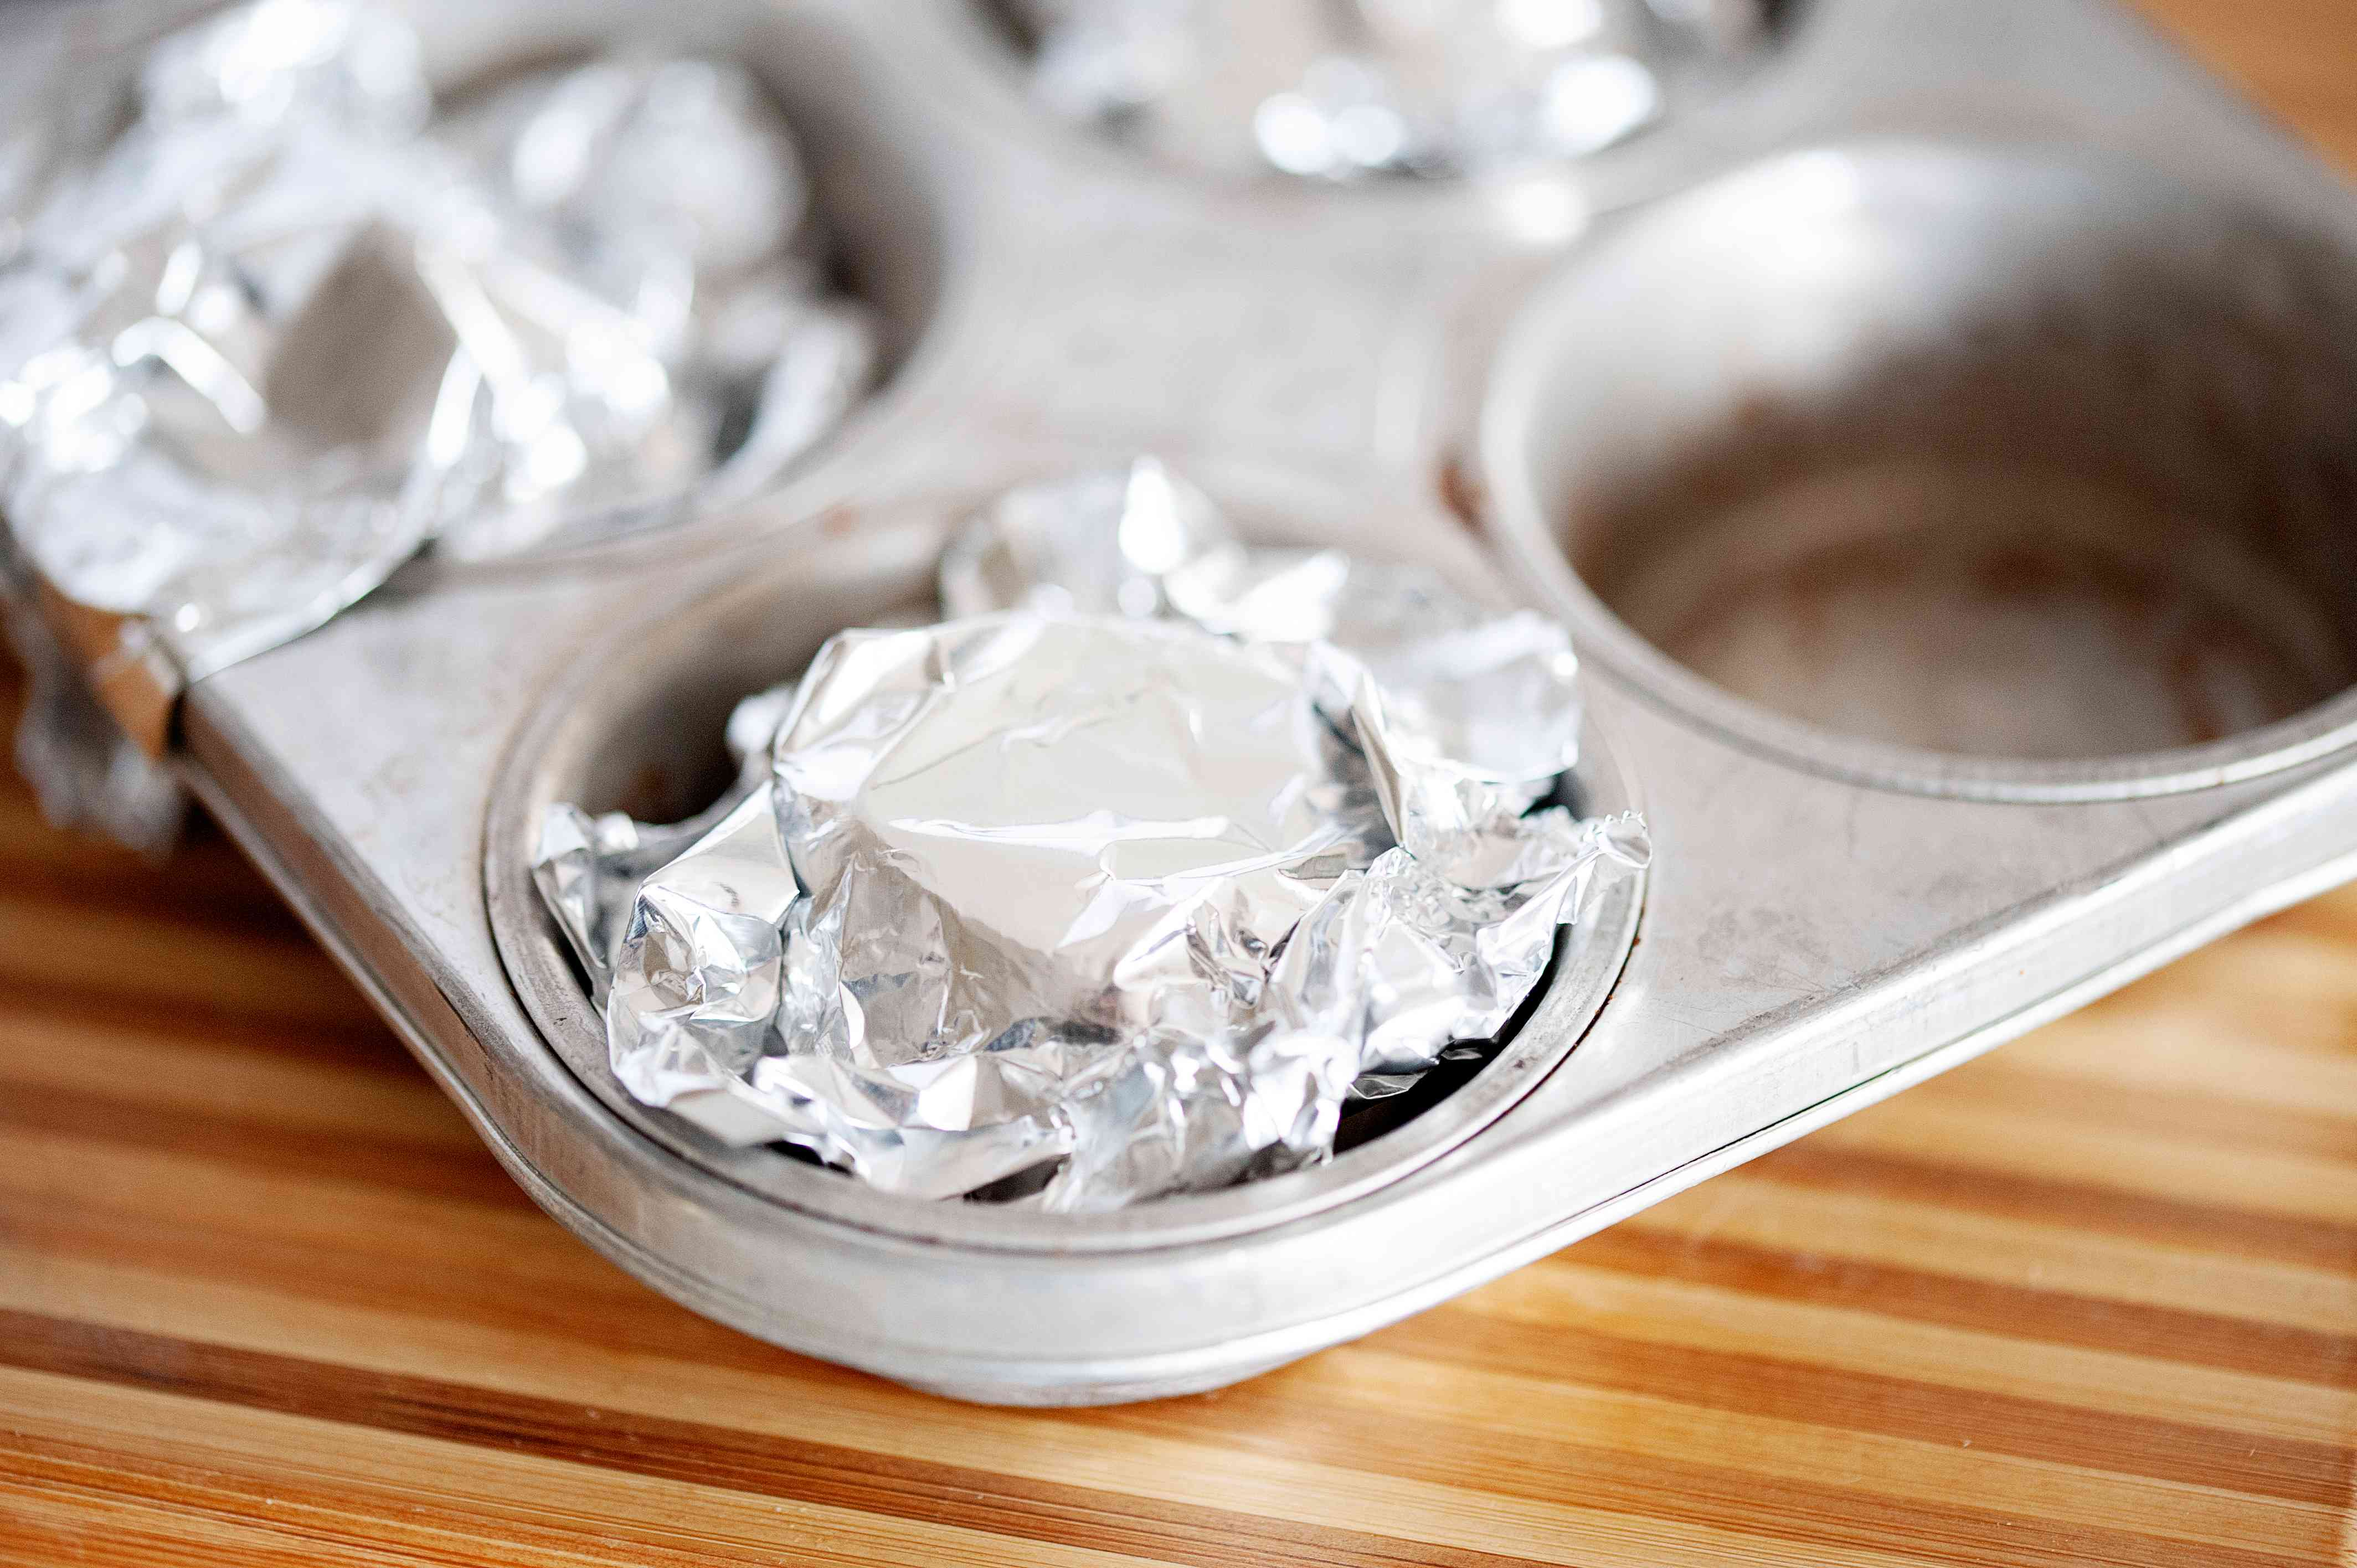 Foil wrapped head of garlic in a muffin tin.